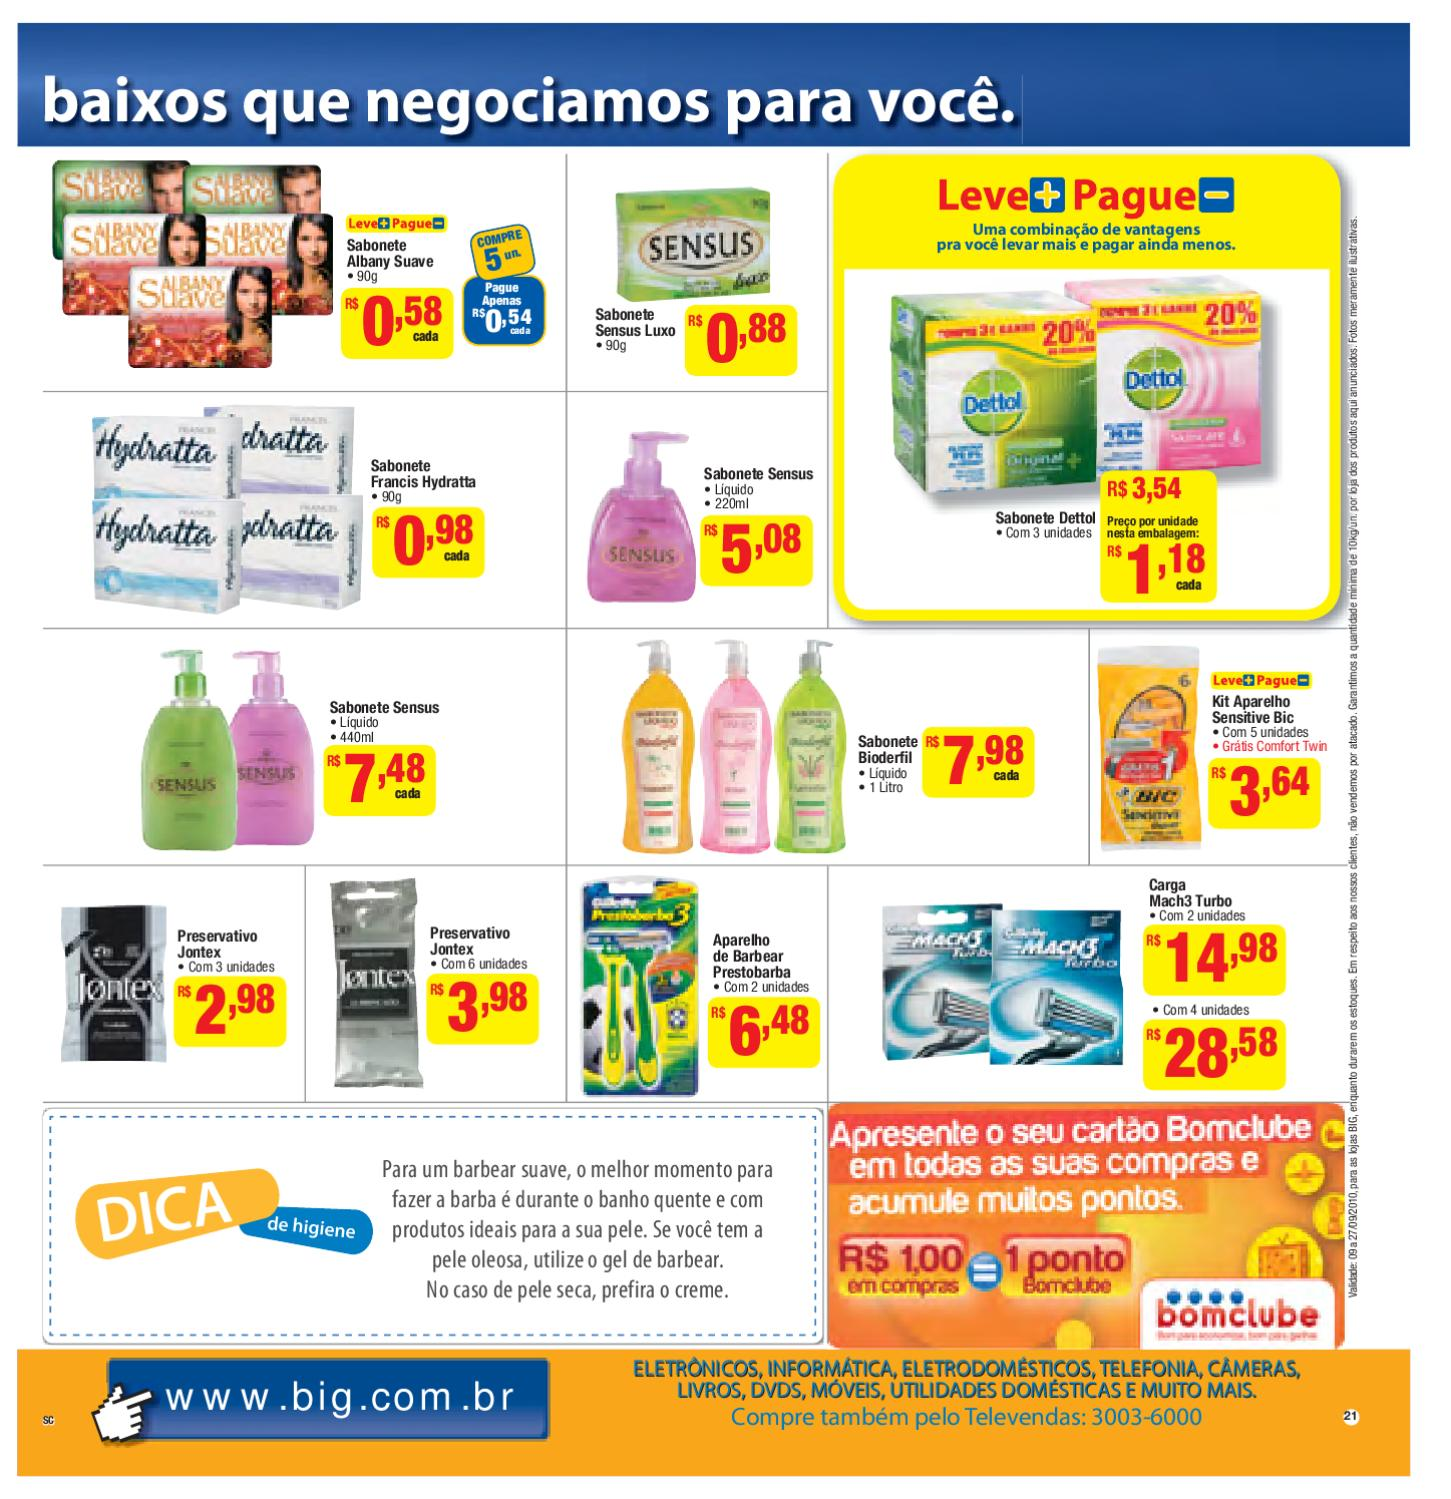 Ofertas big sc by hipermercado big issuu fandeluxe Images